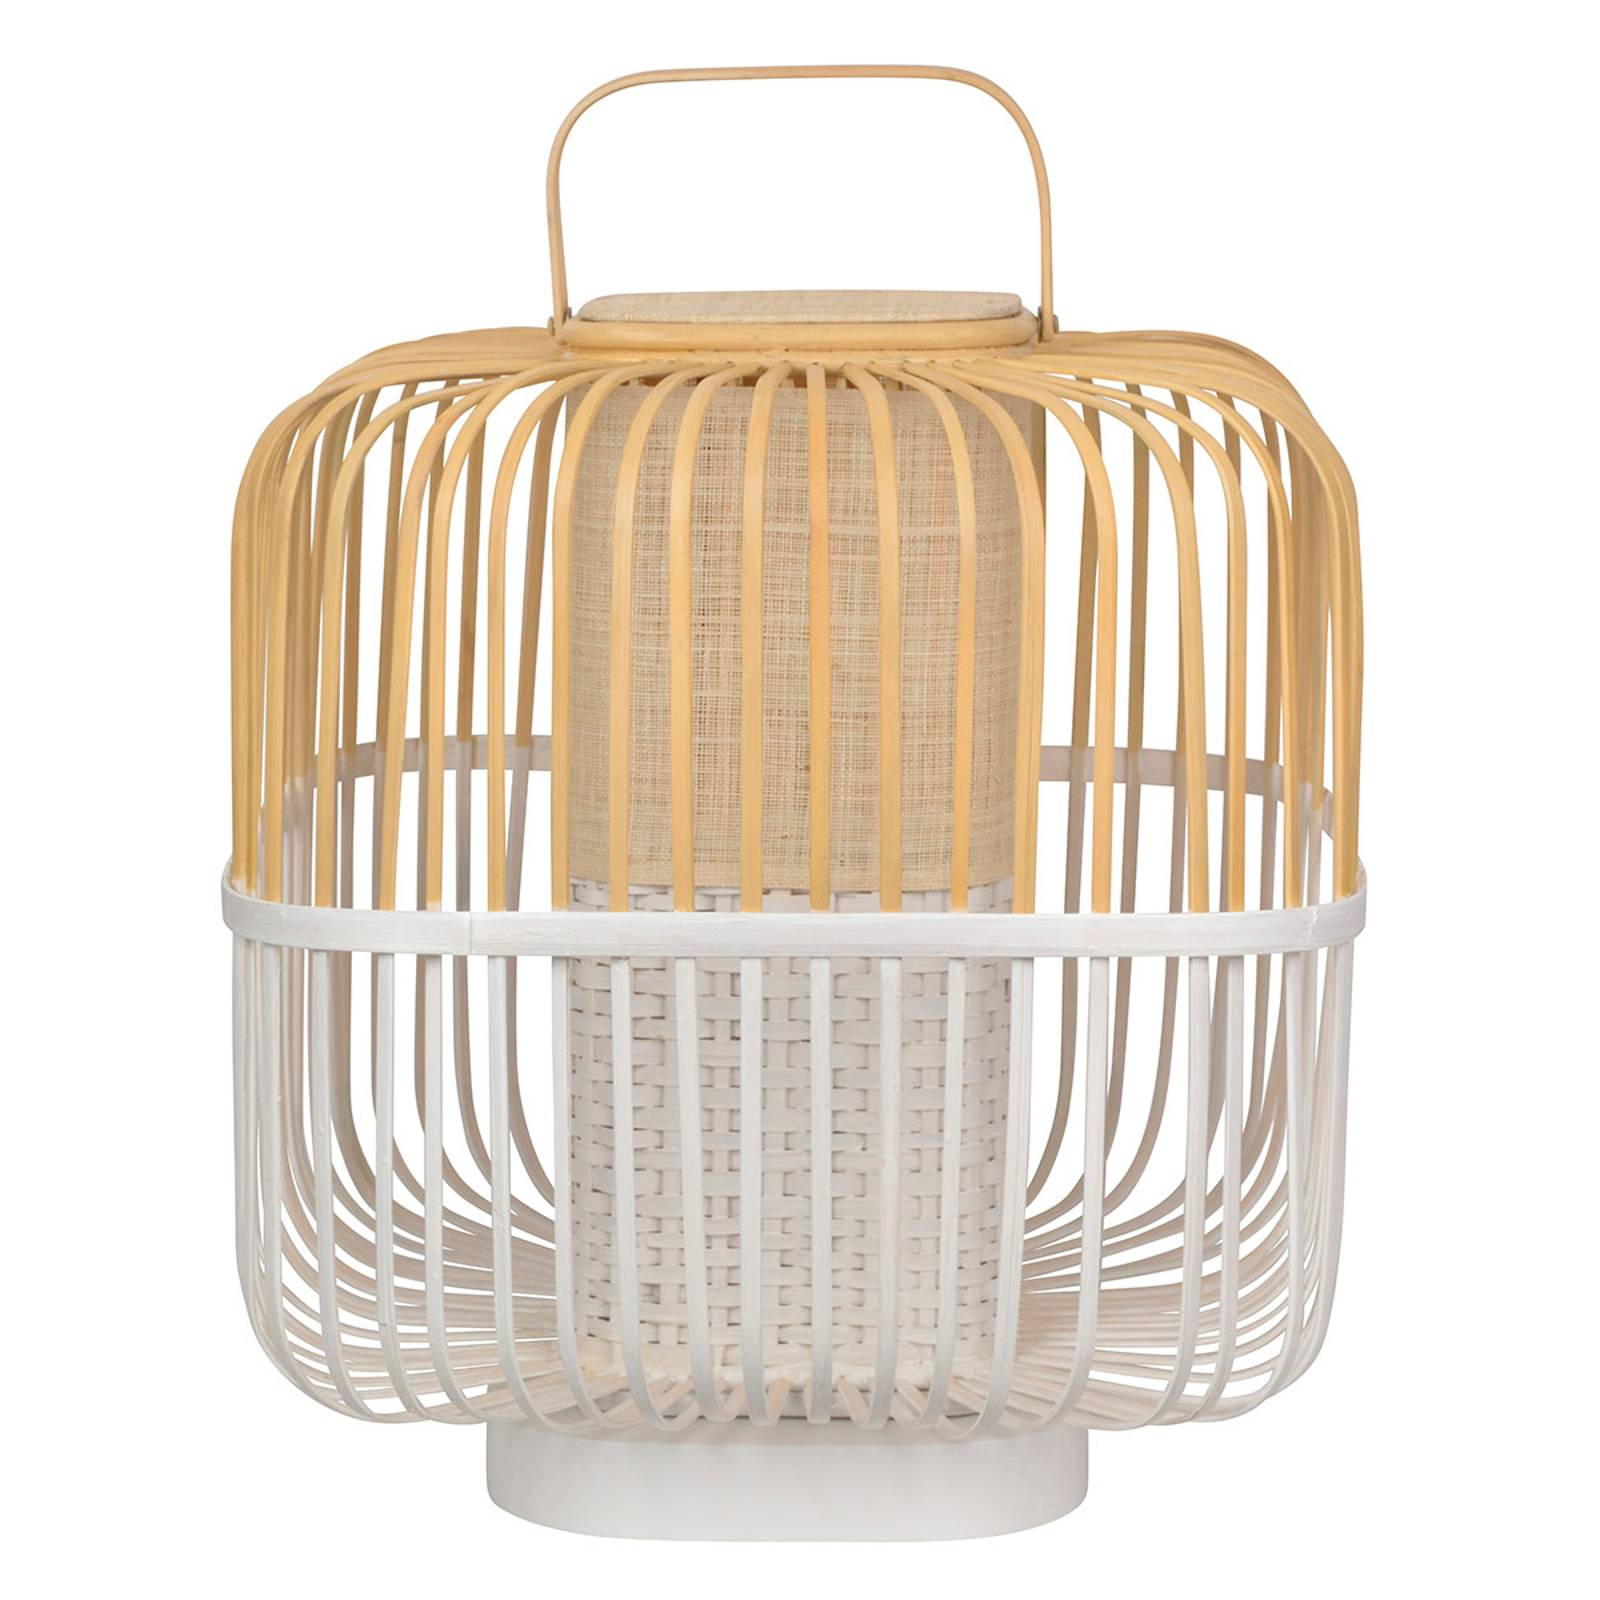 Forestier Bamboo Square M tafellamp in wit